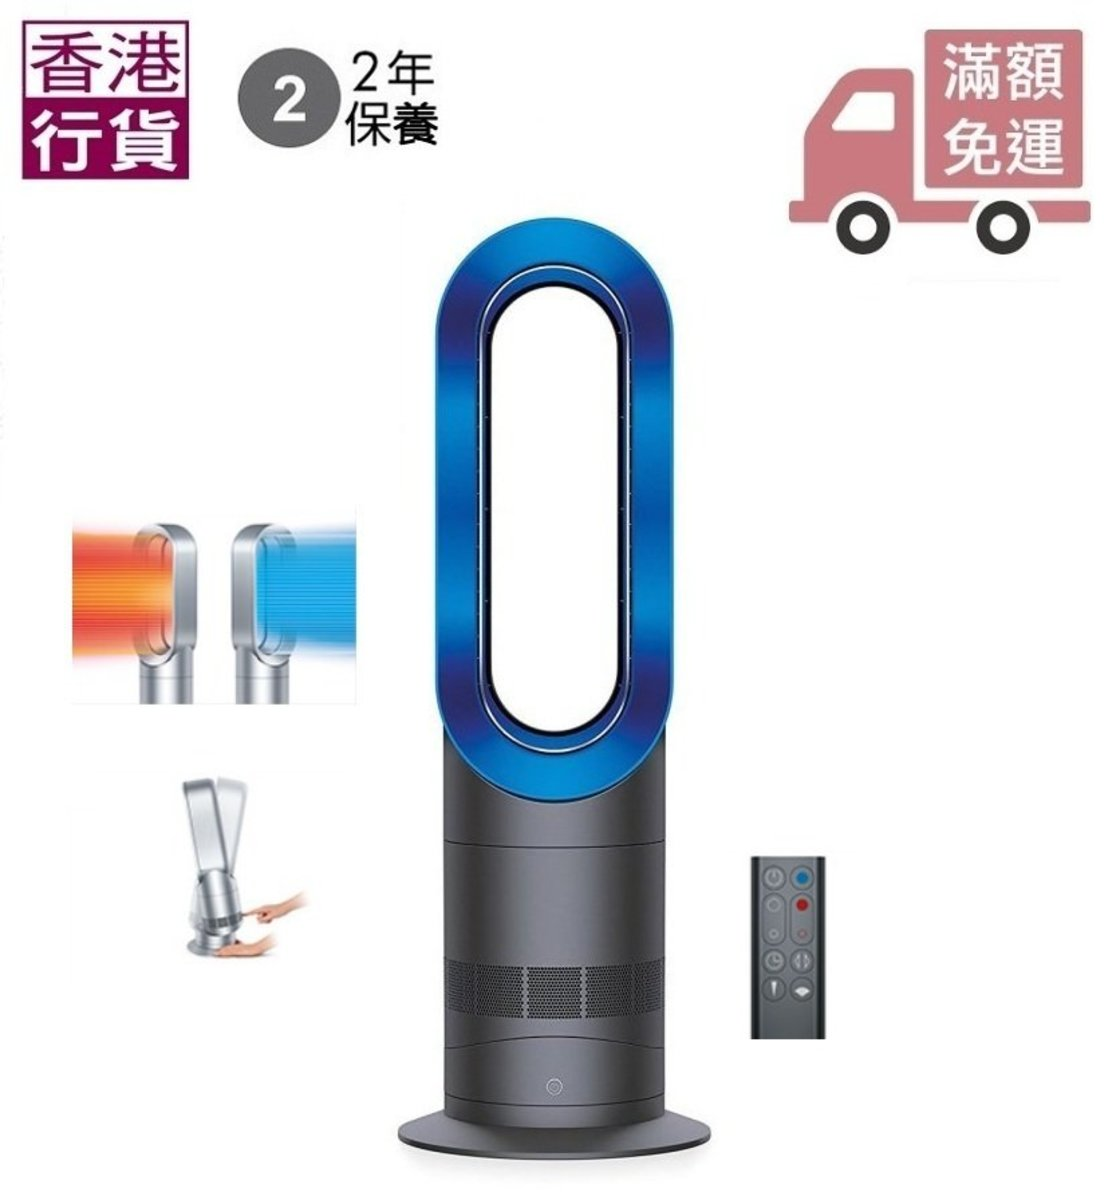 AM09 (BLUE) Hong Kong Version (Free Delivery)